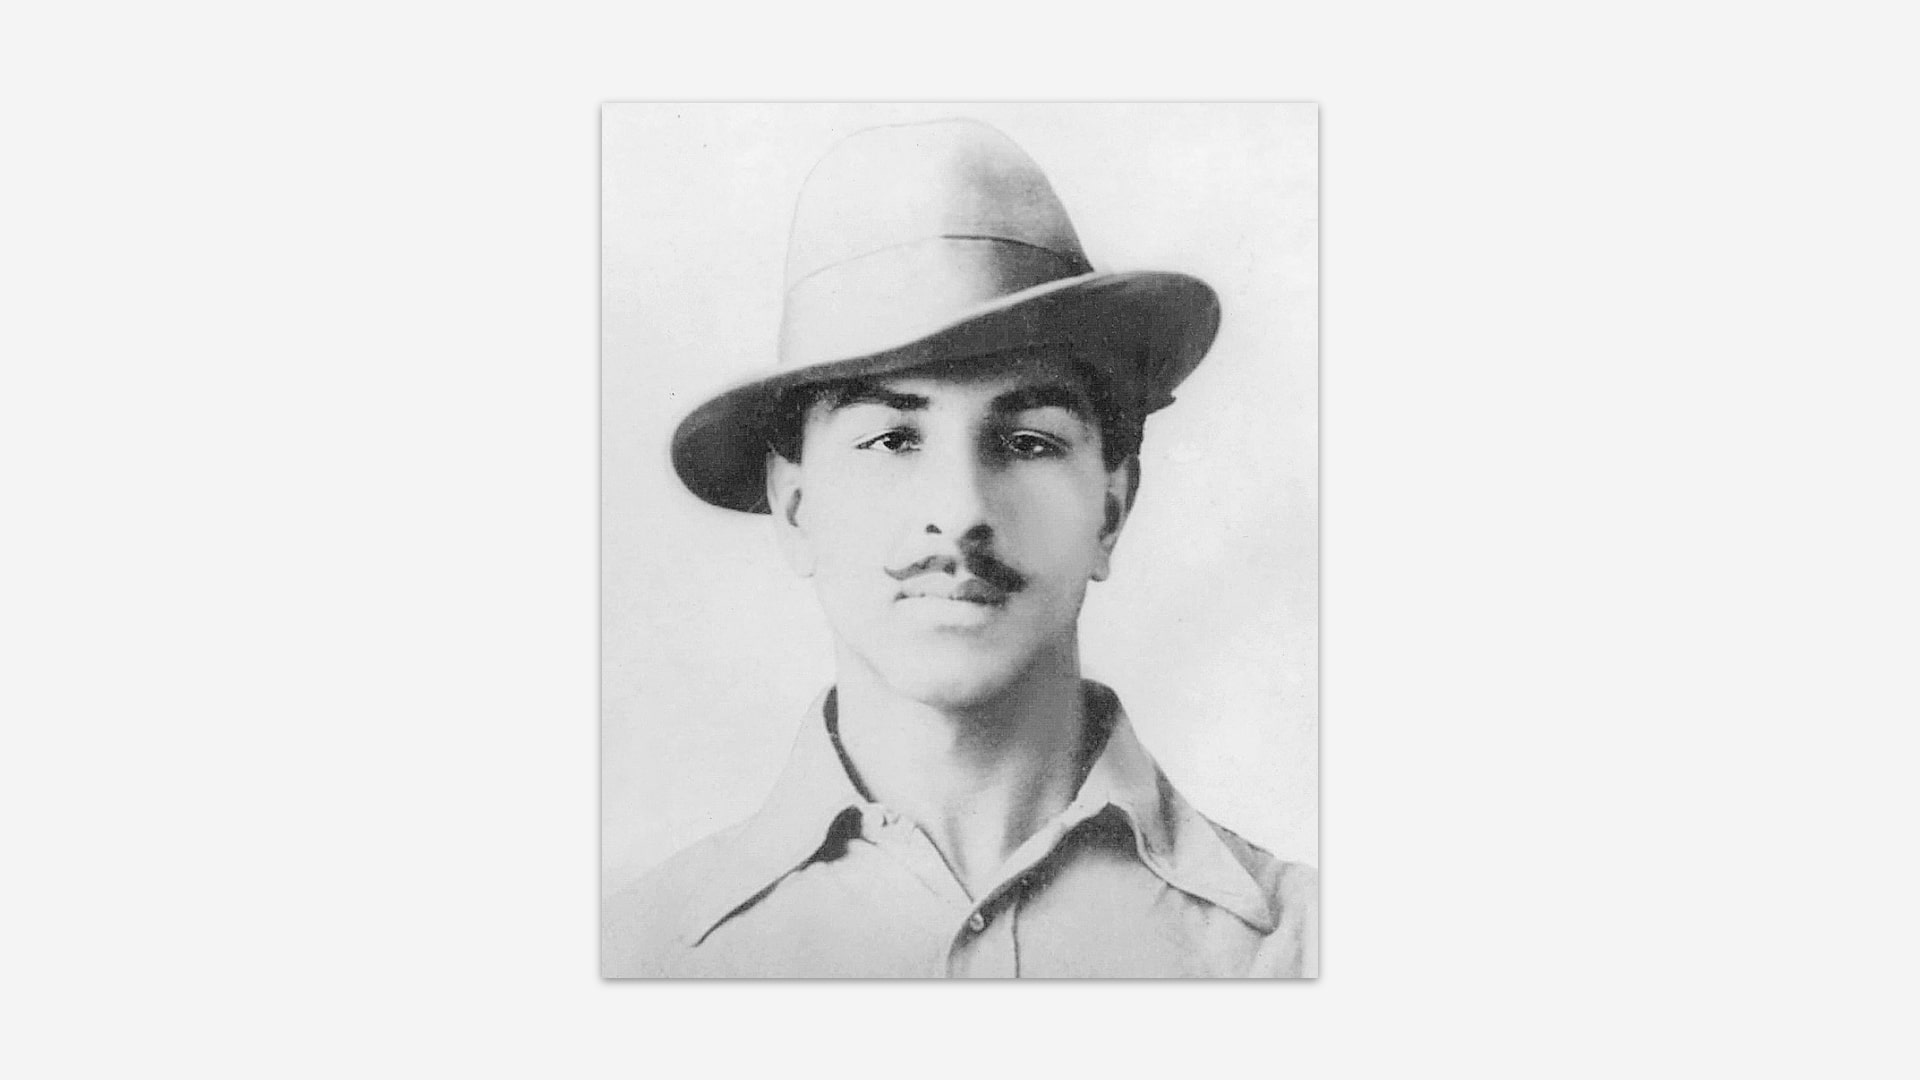 21 year old Bhagat Singh's photograph